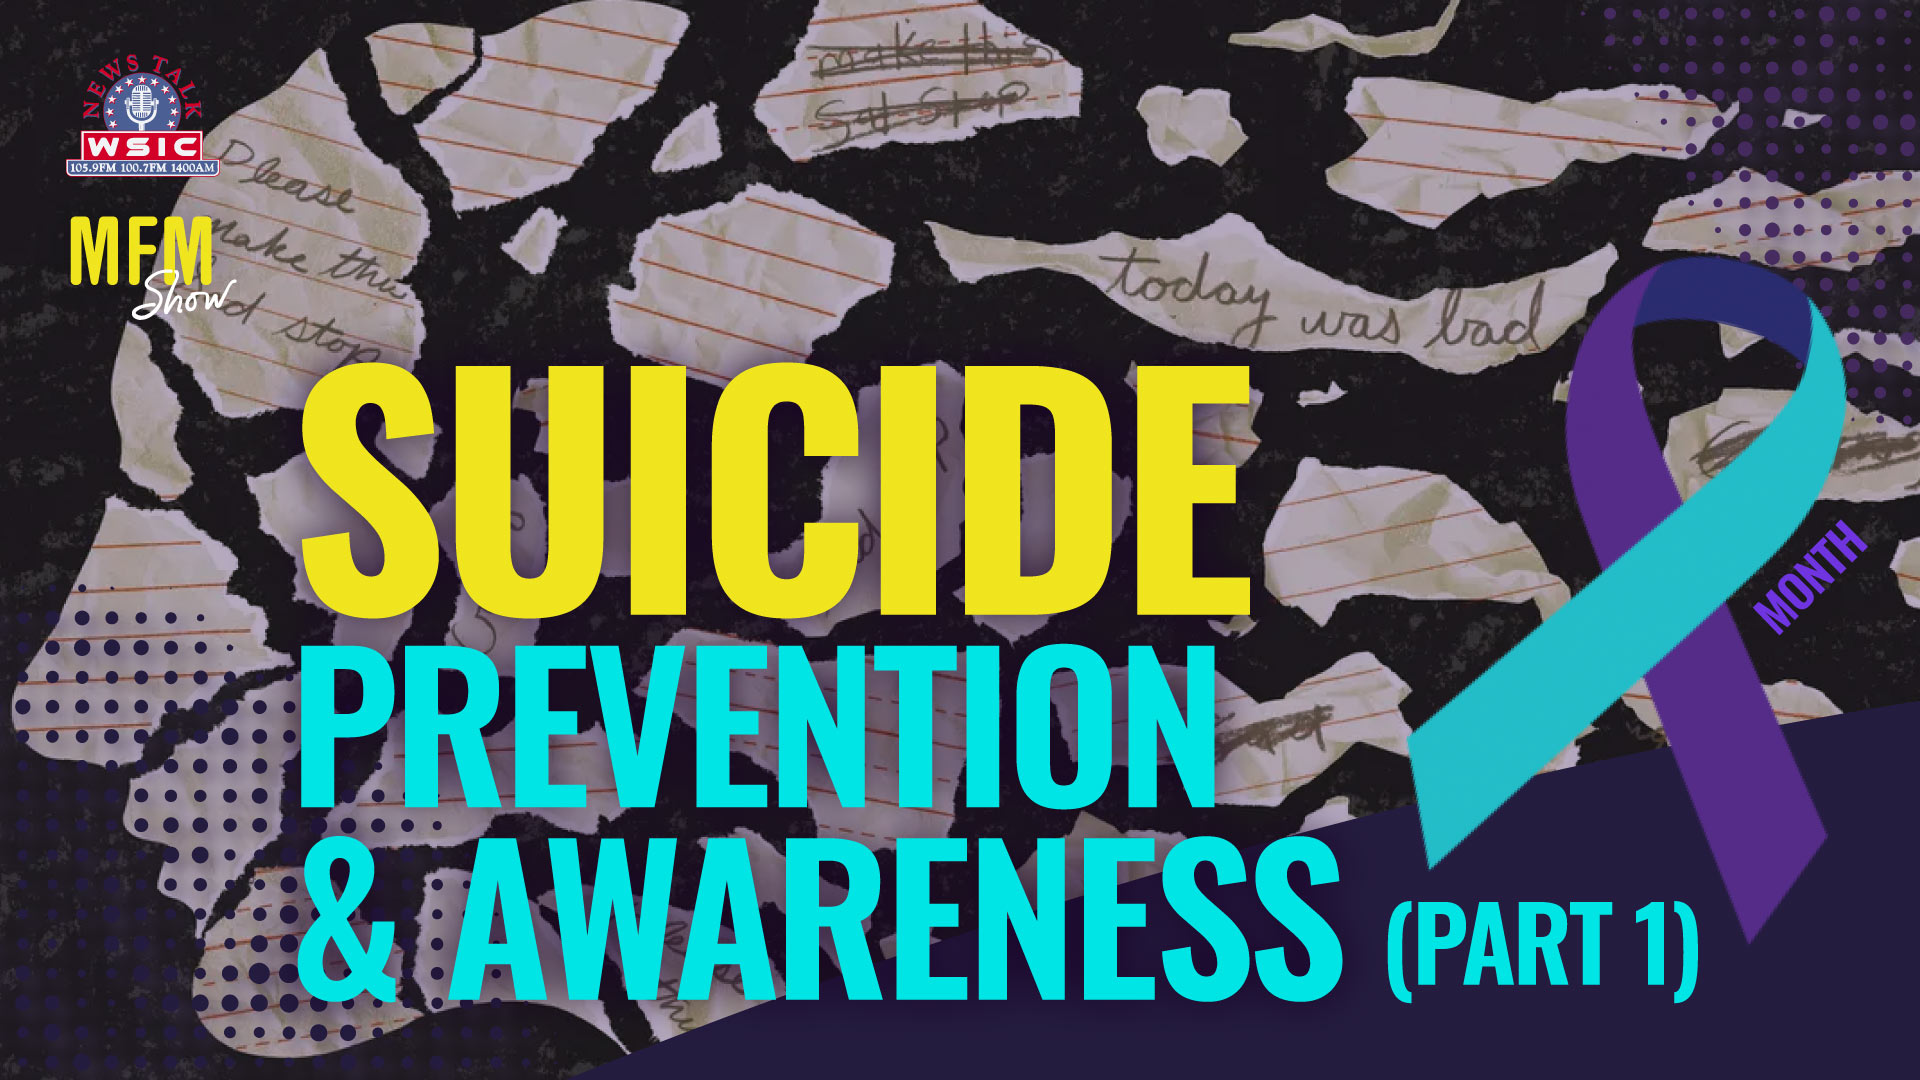 Suicide Prevention and Awareness (Part 1)